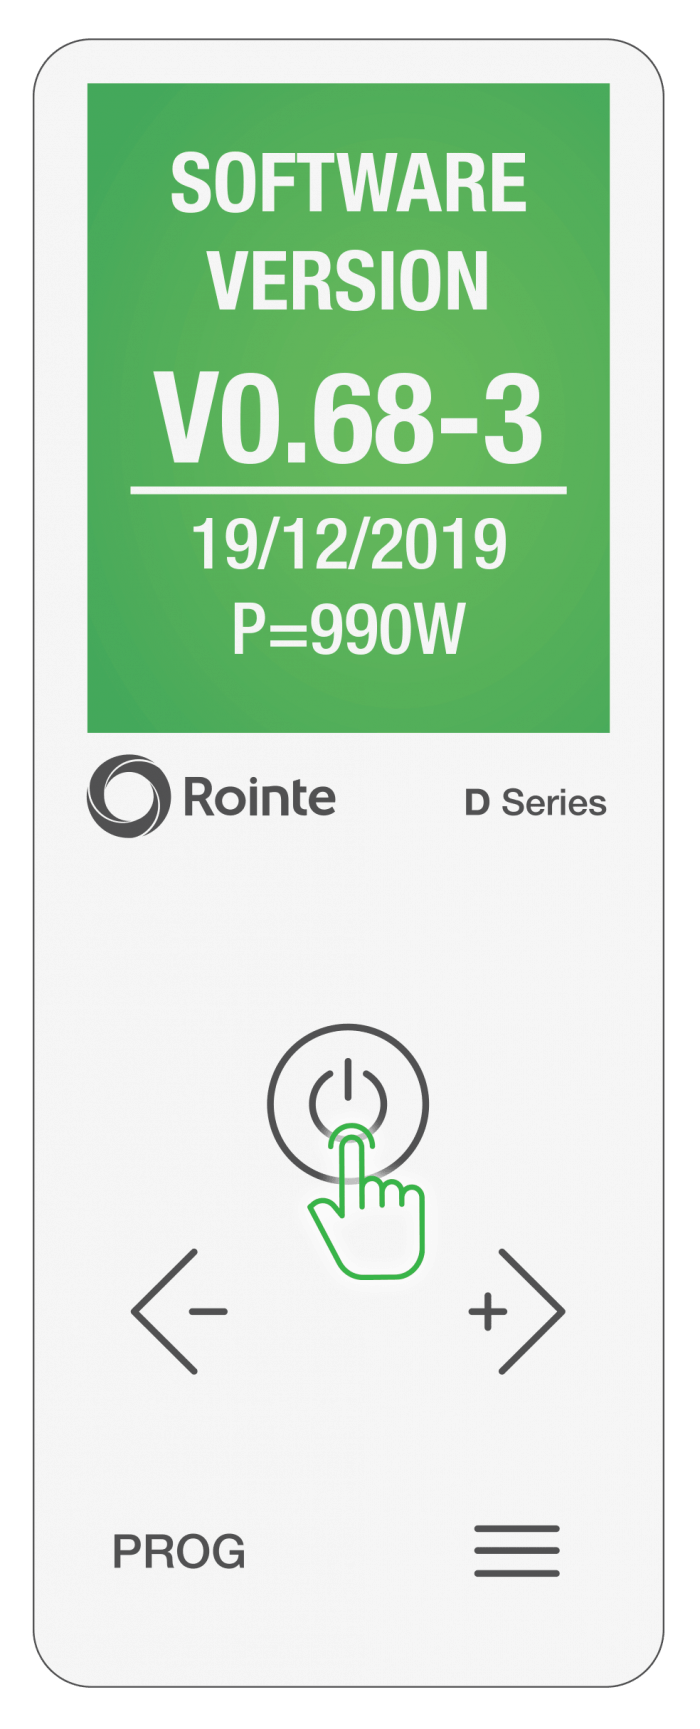 Updated Rointe Connect app software screen